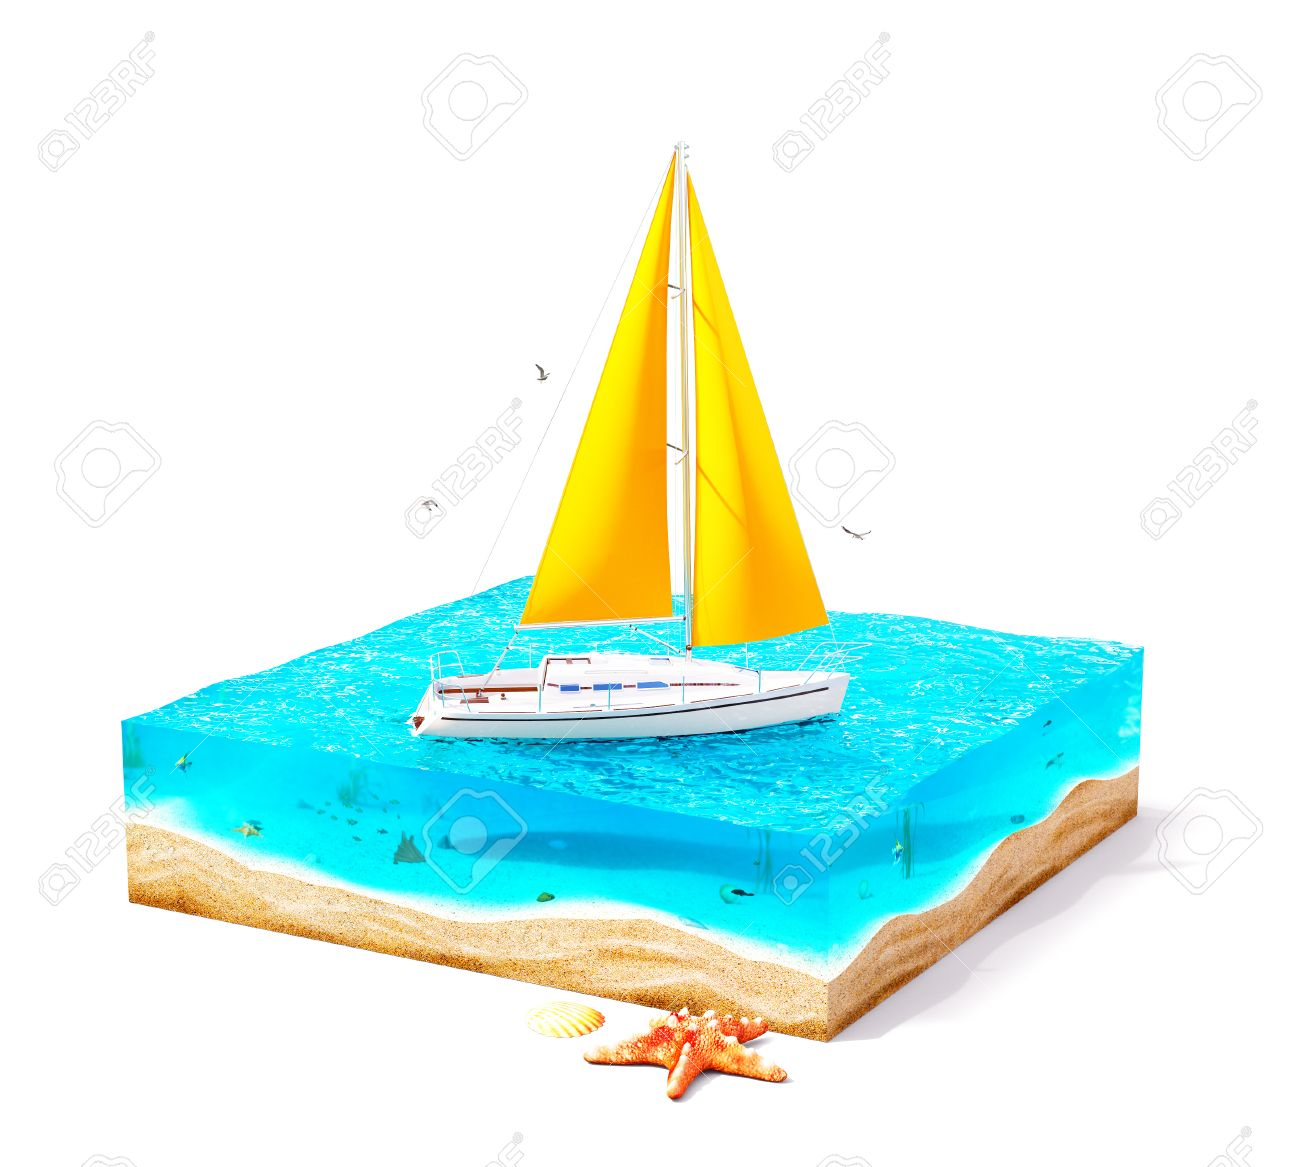 Tropical Island Yacht Piece Of Tropical Island With Luxury White Yacht In Ocean In